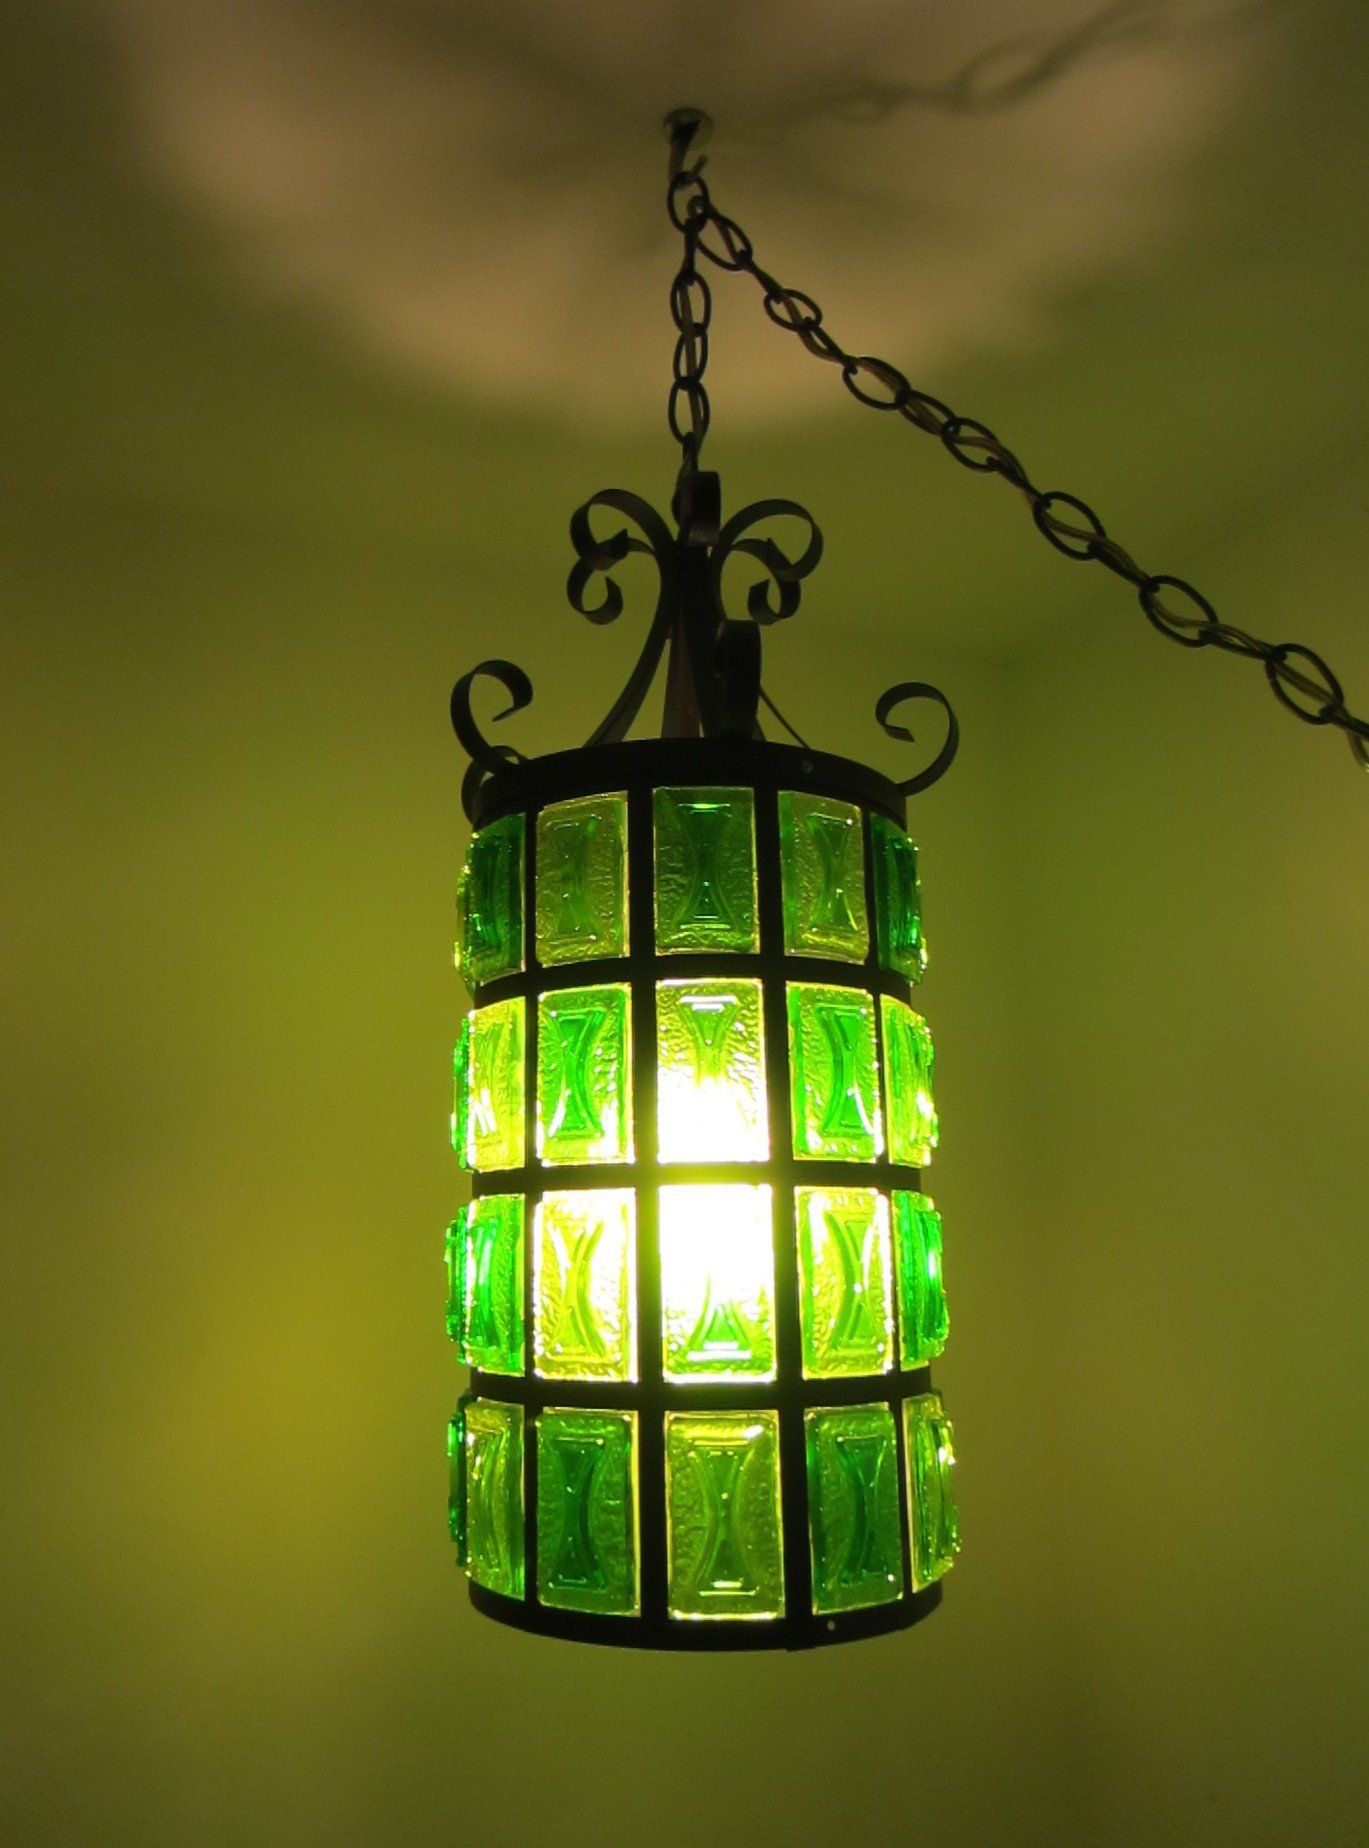 A Pendant Hangs From A Single Cord With Just One Light Bulb At The End Inside A Beautiful Lucite Green Decorated Shade Long Chain White Long Co Vintage Lamps